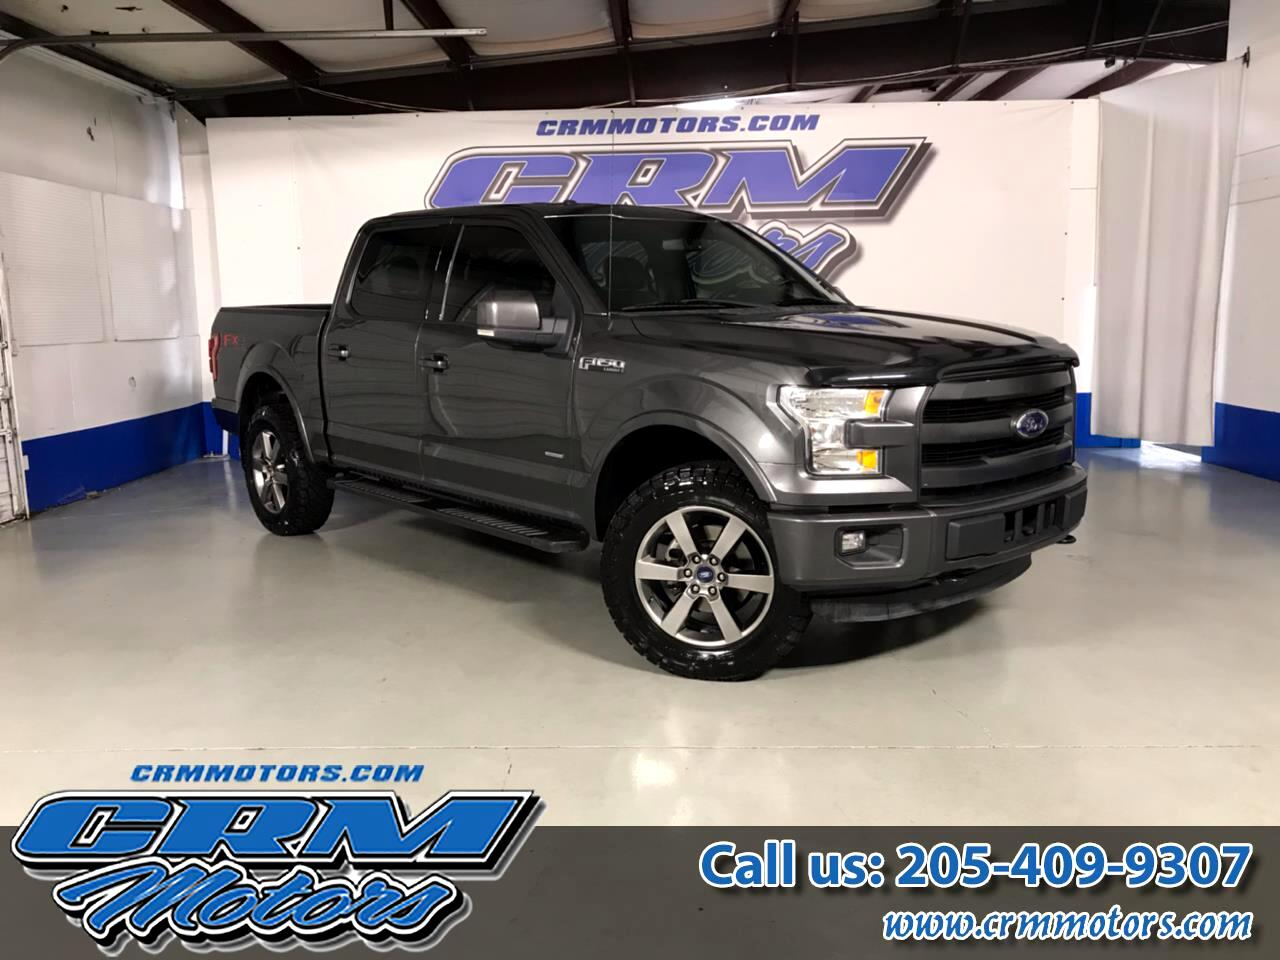 2015 Ford F-150 4WD SUPERCREW LARIAT, LEATHER, ALL TERRAIN TIRES!